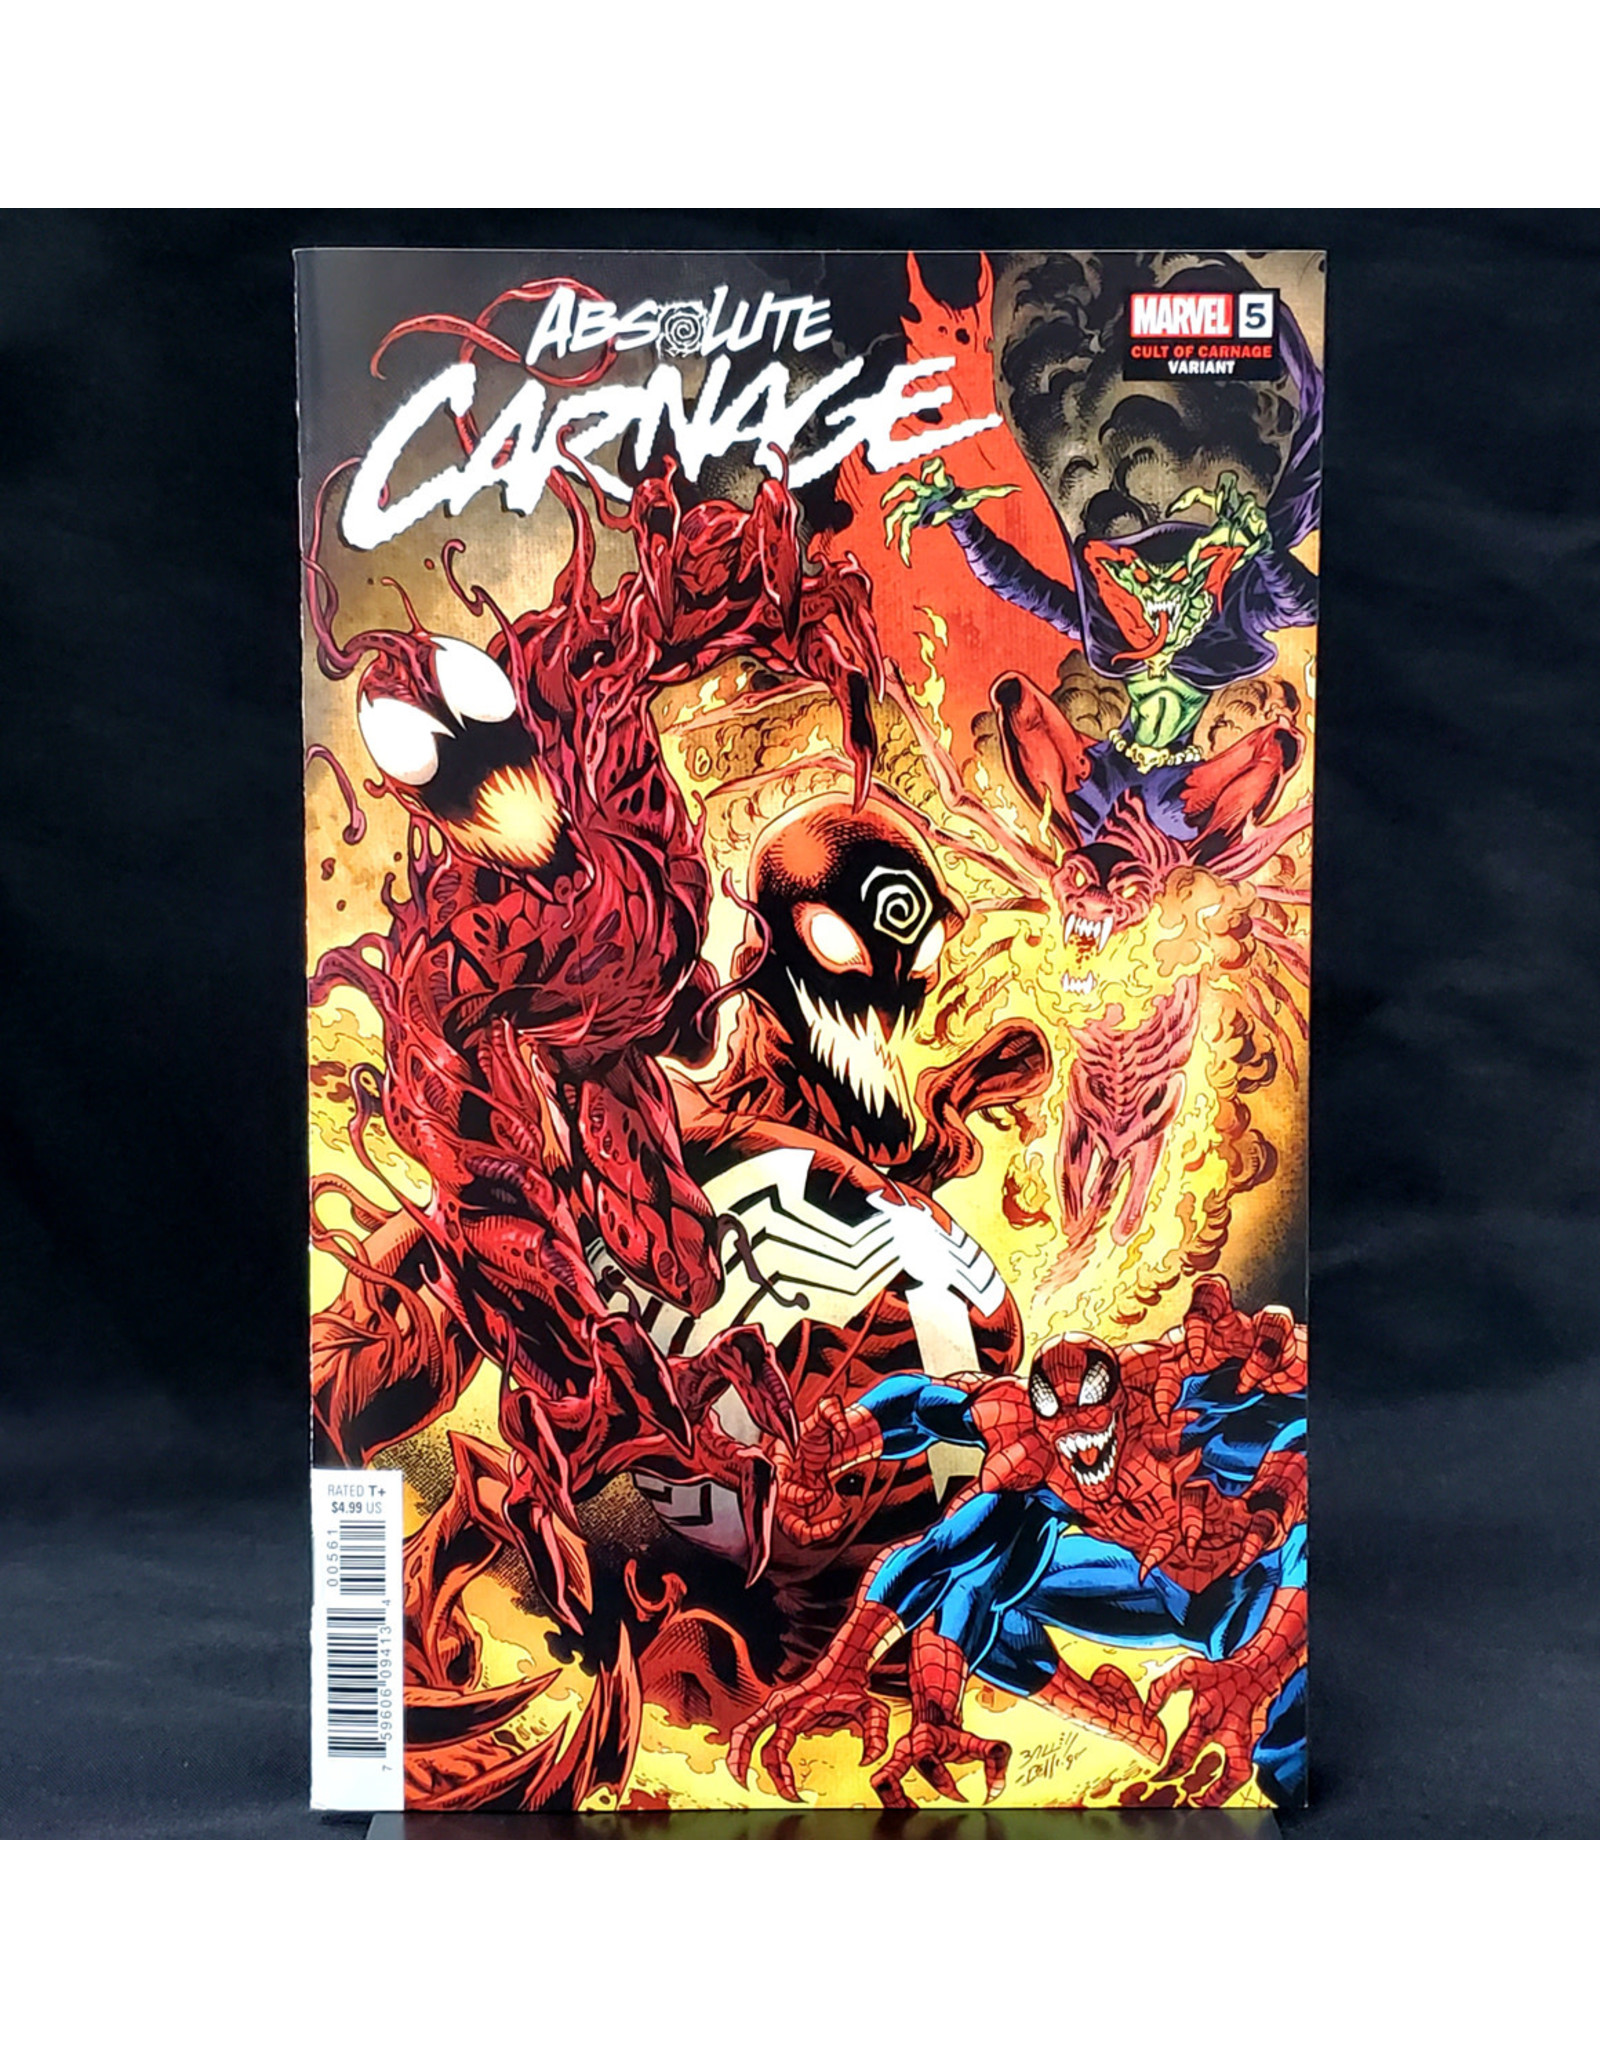 MARVEL COMICS ABSOLUTE CARNAGE #5 (OF 5) BAGLEY CULT OF CARNAGE VARIANT